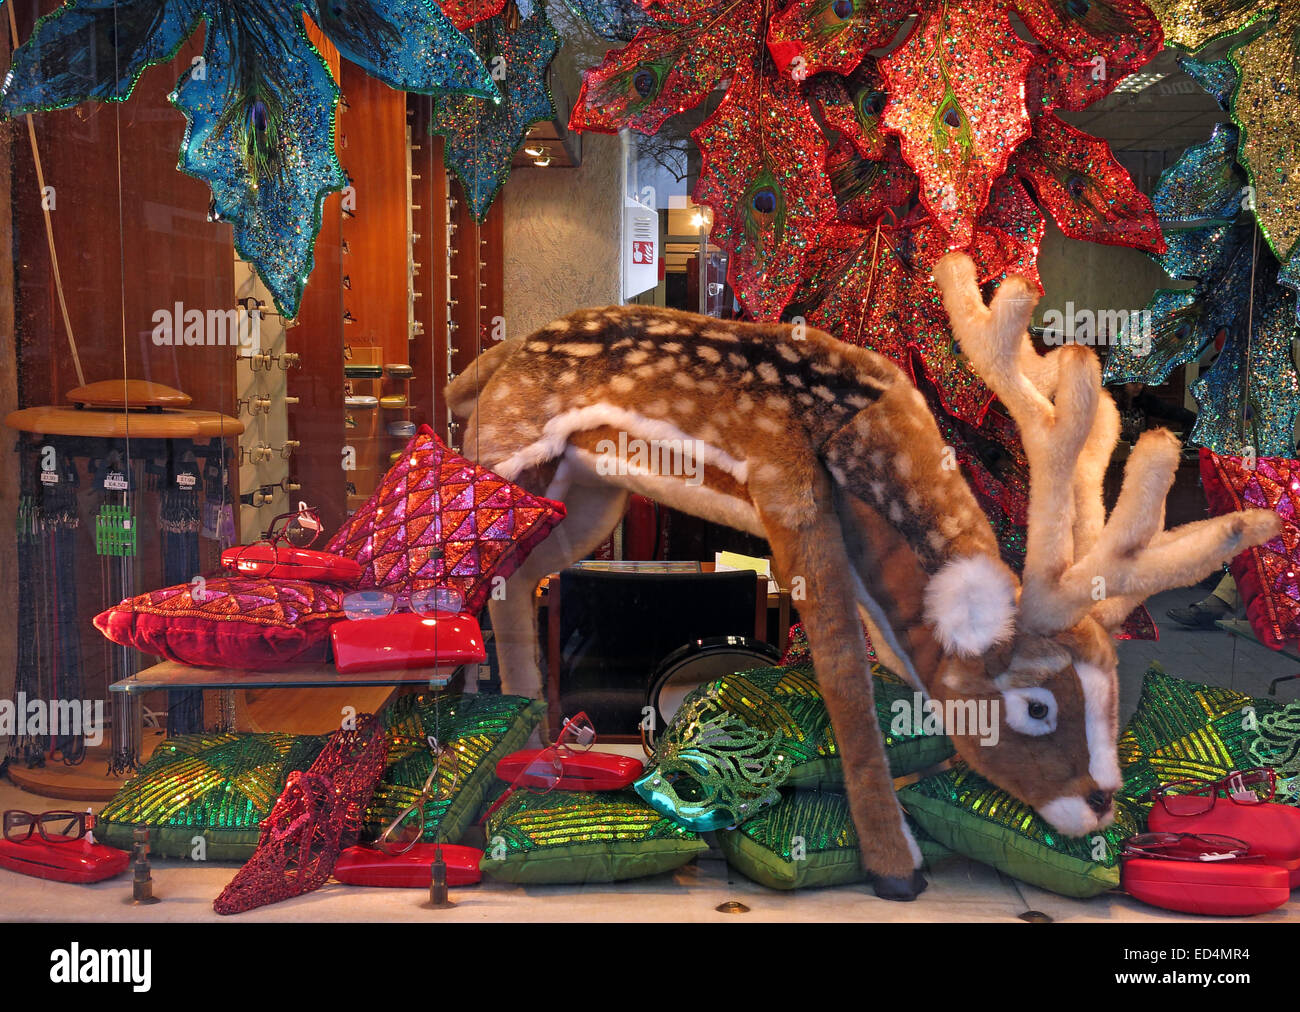 Winter Christmas display in opticians window, Walsall, west midlands, England, UK - Stock Image